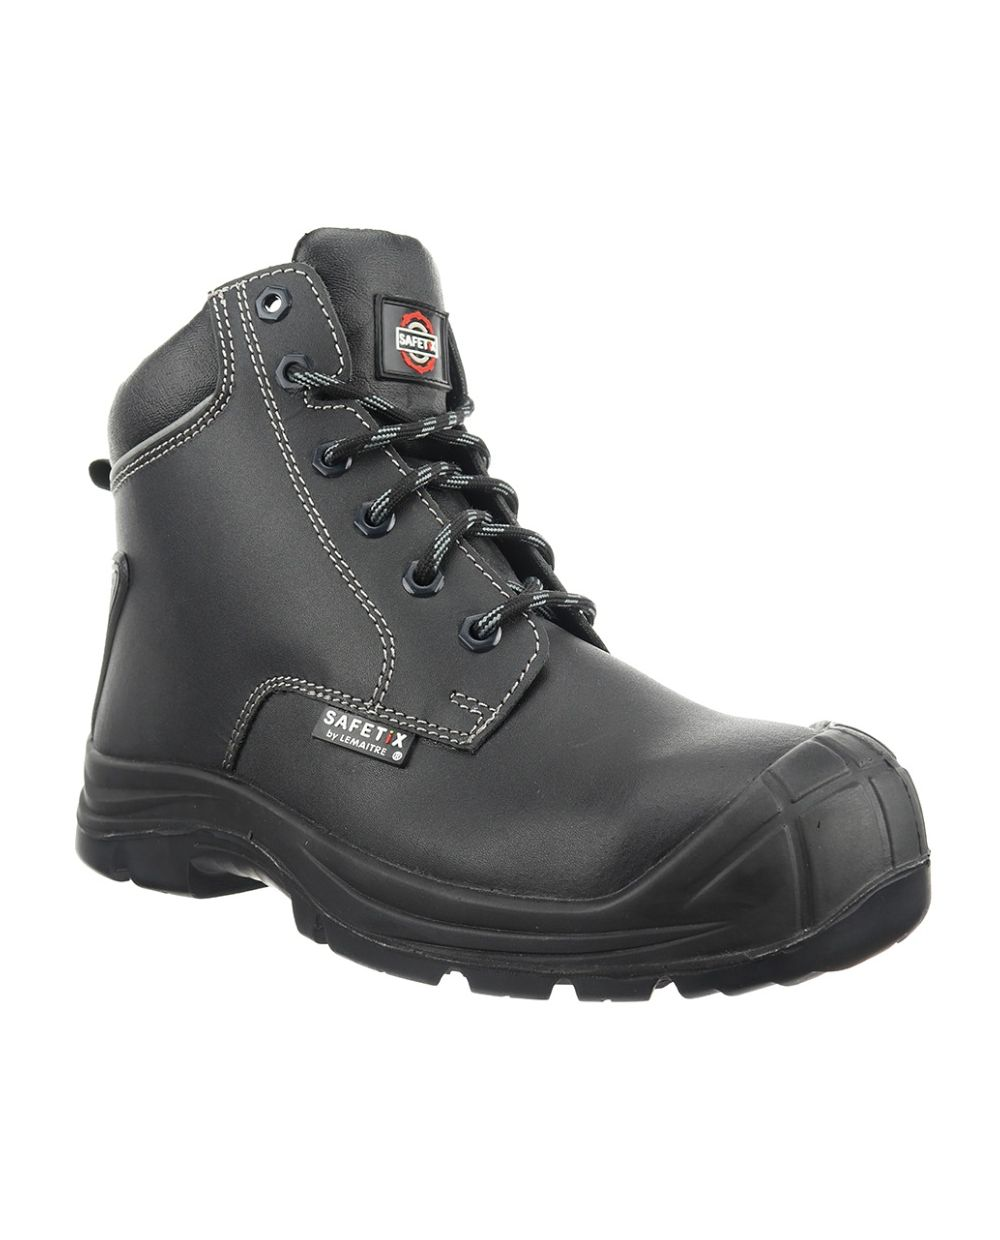 Leo B - PU/Rubber Derby Boot